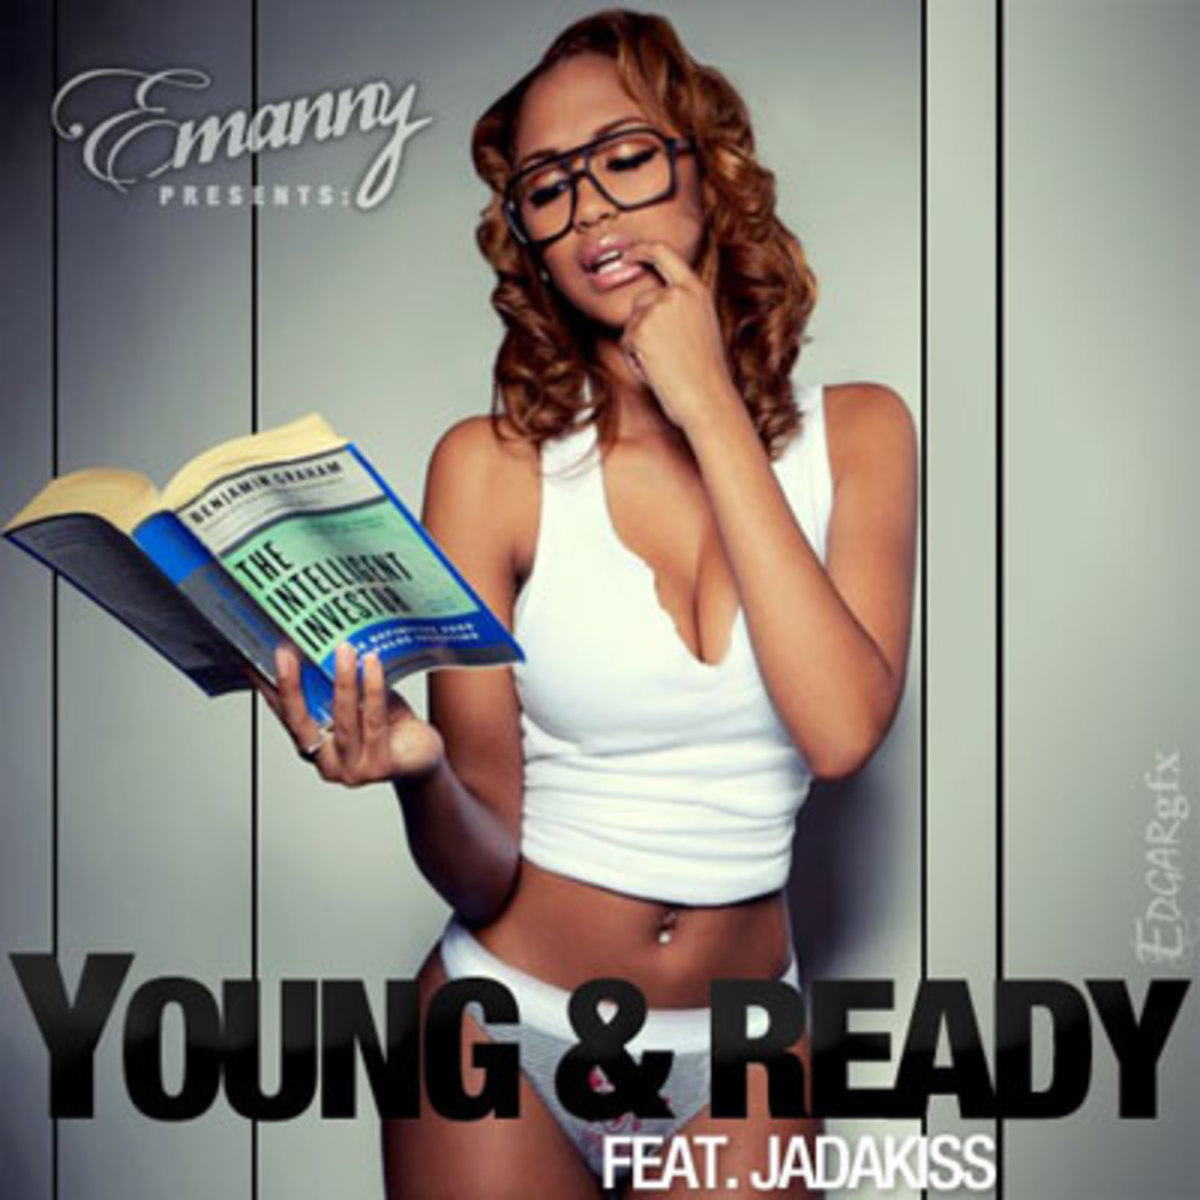 emanny-youngready.jpg